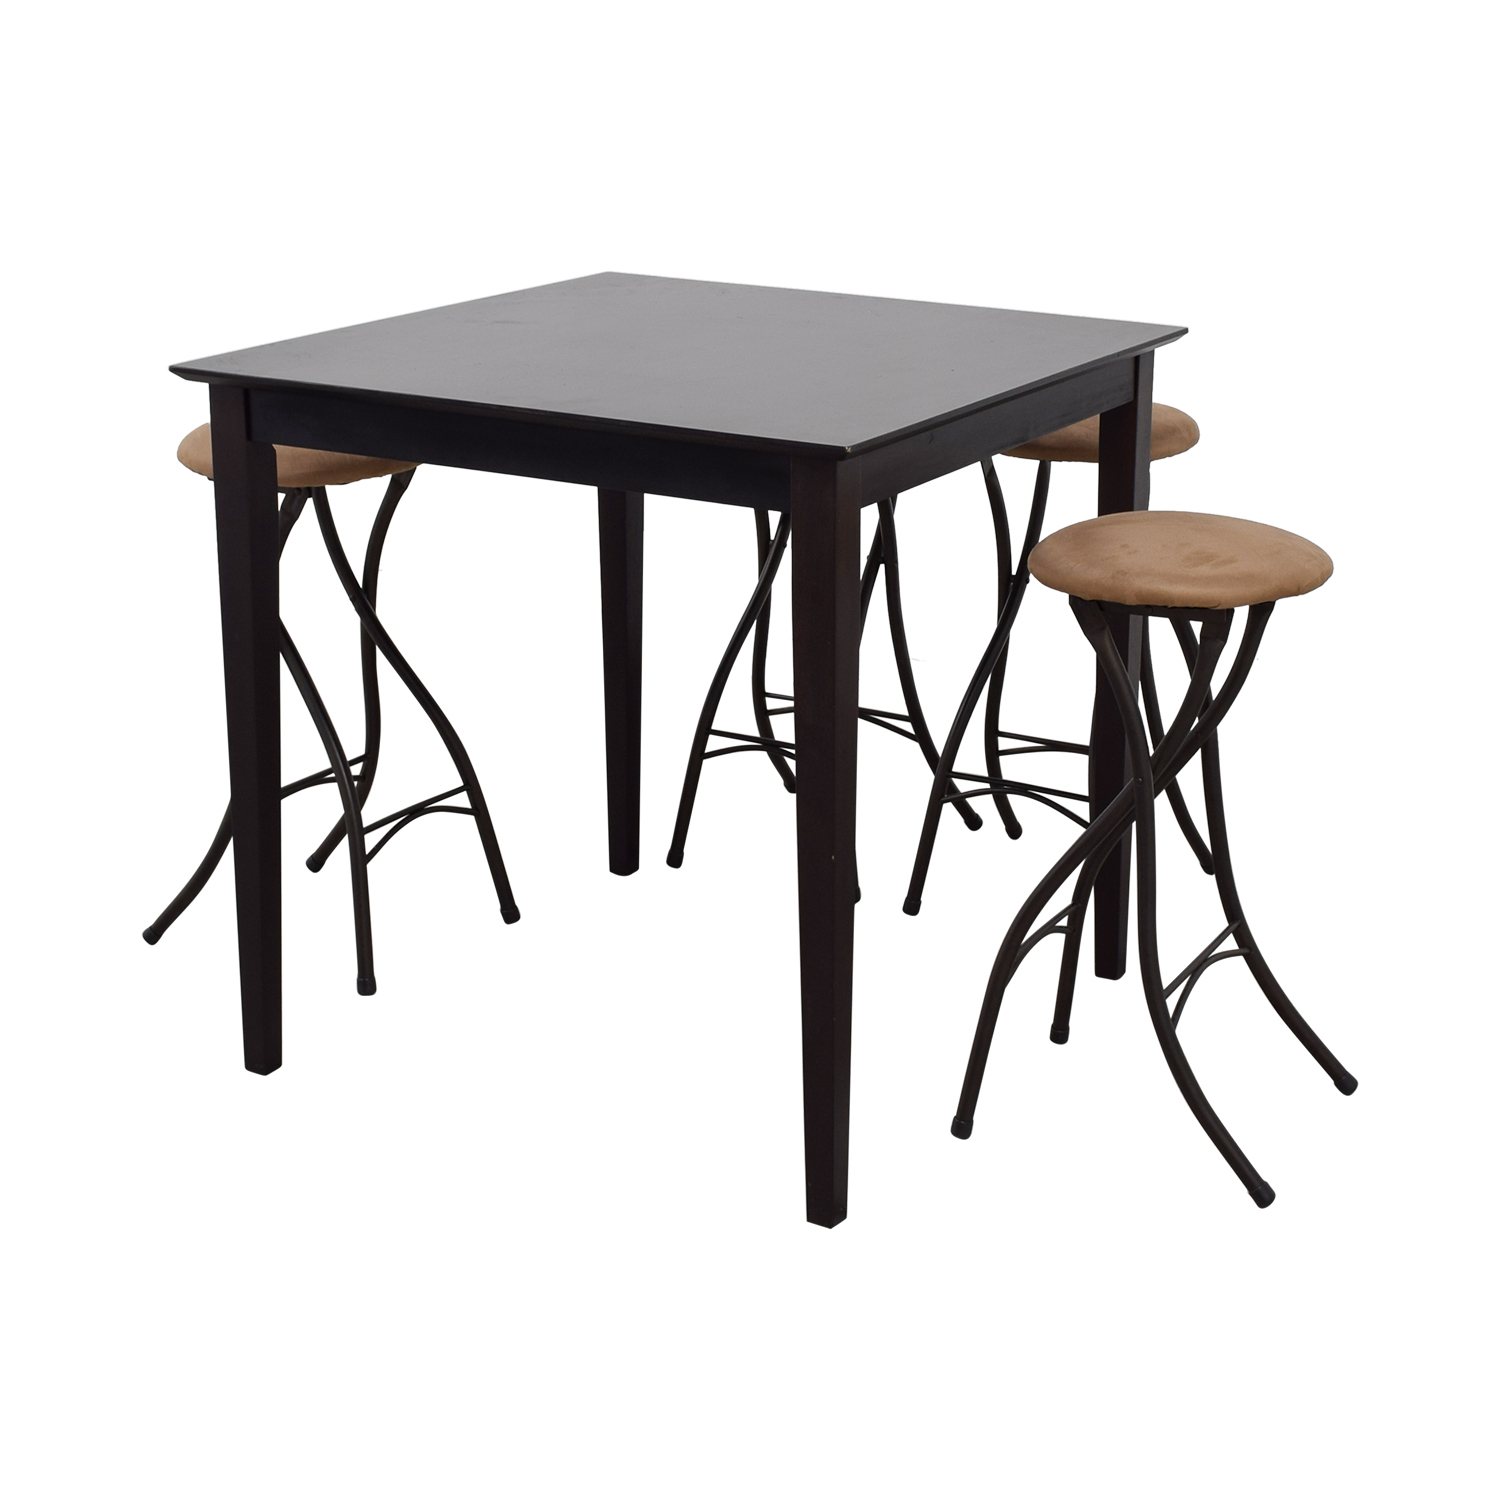 buy Cheyenne Industries Counter Top Dining Set with Stools Cheyenne Industries Dining Sets